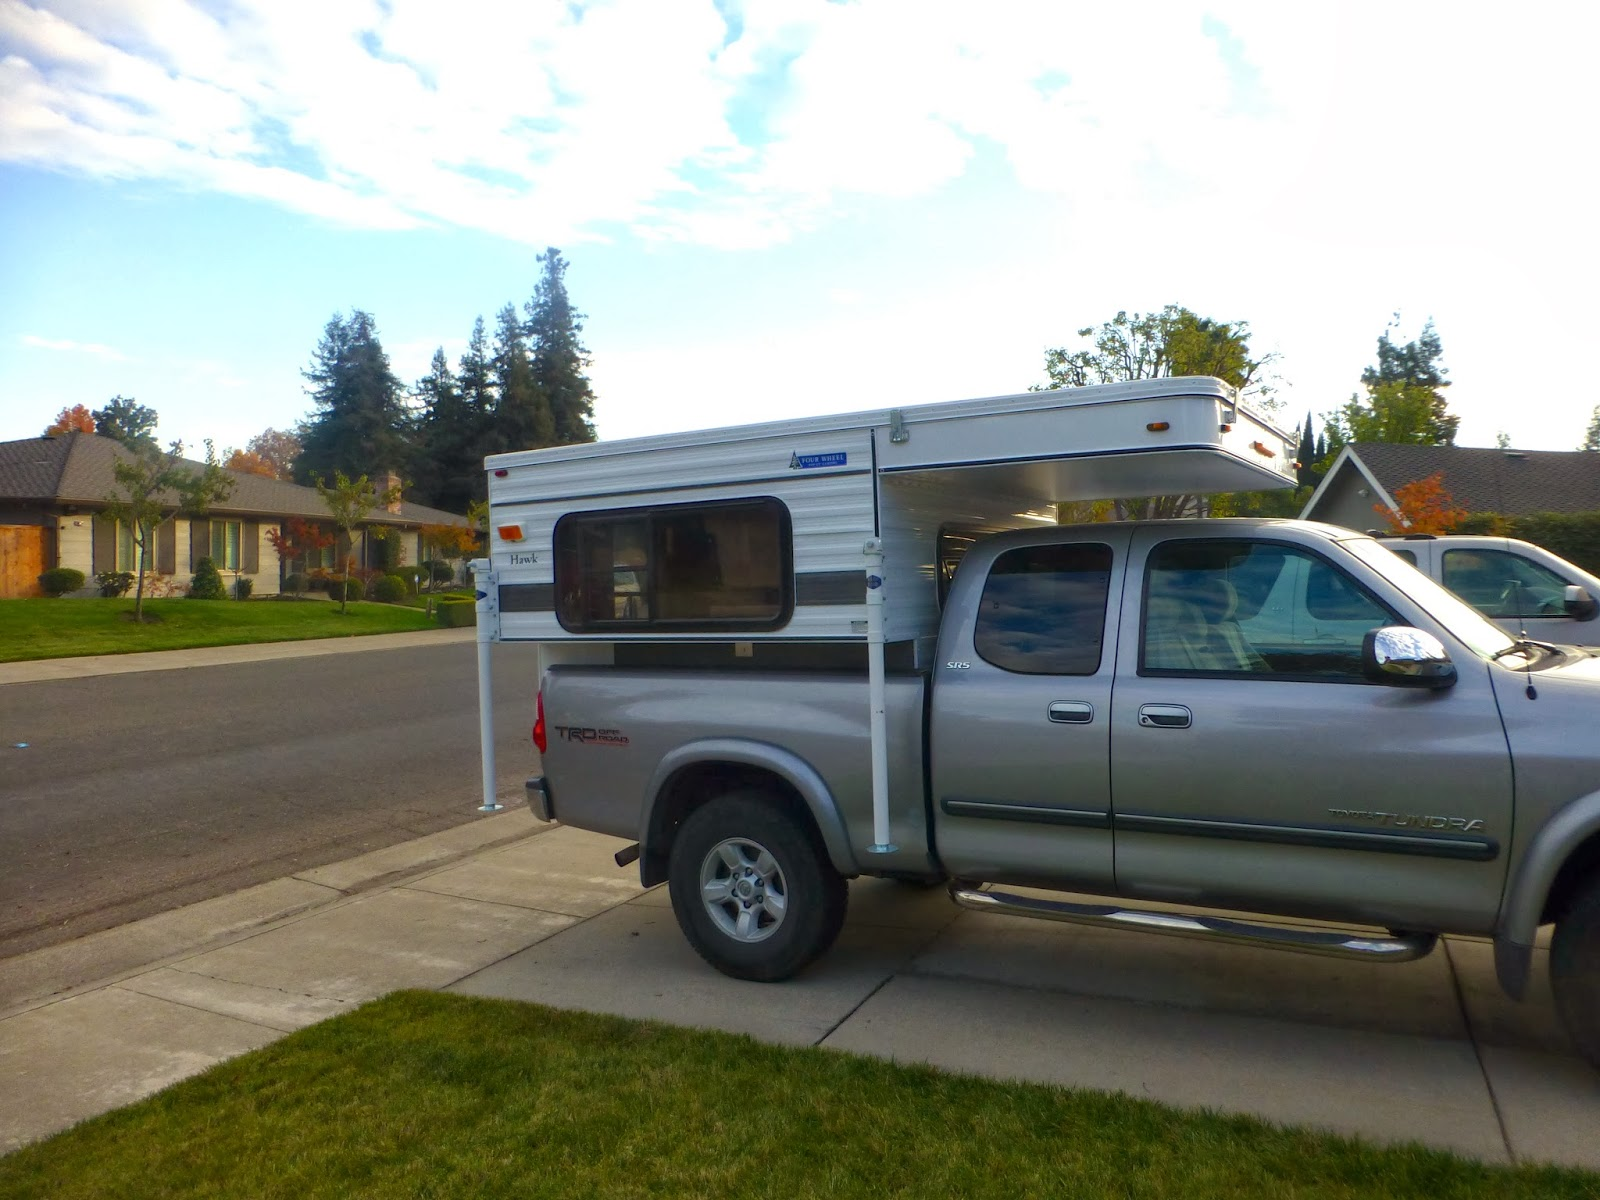 Bill and Veronica's Trip Blog: Our New Camper, inside build